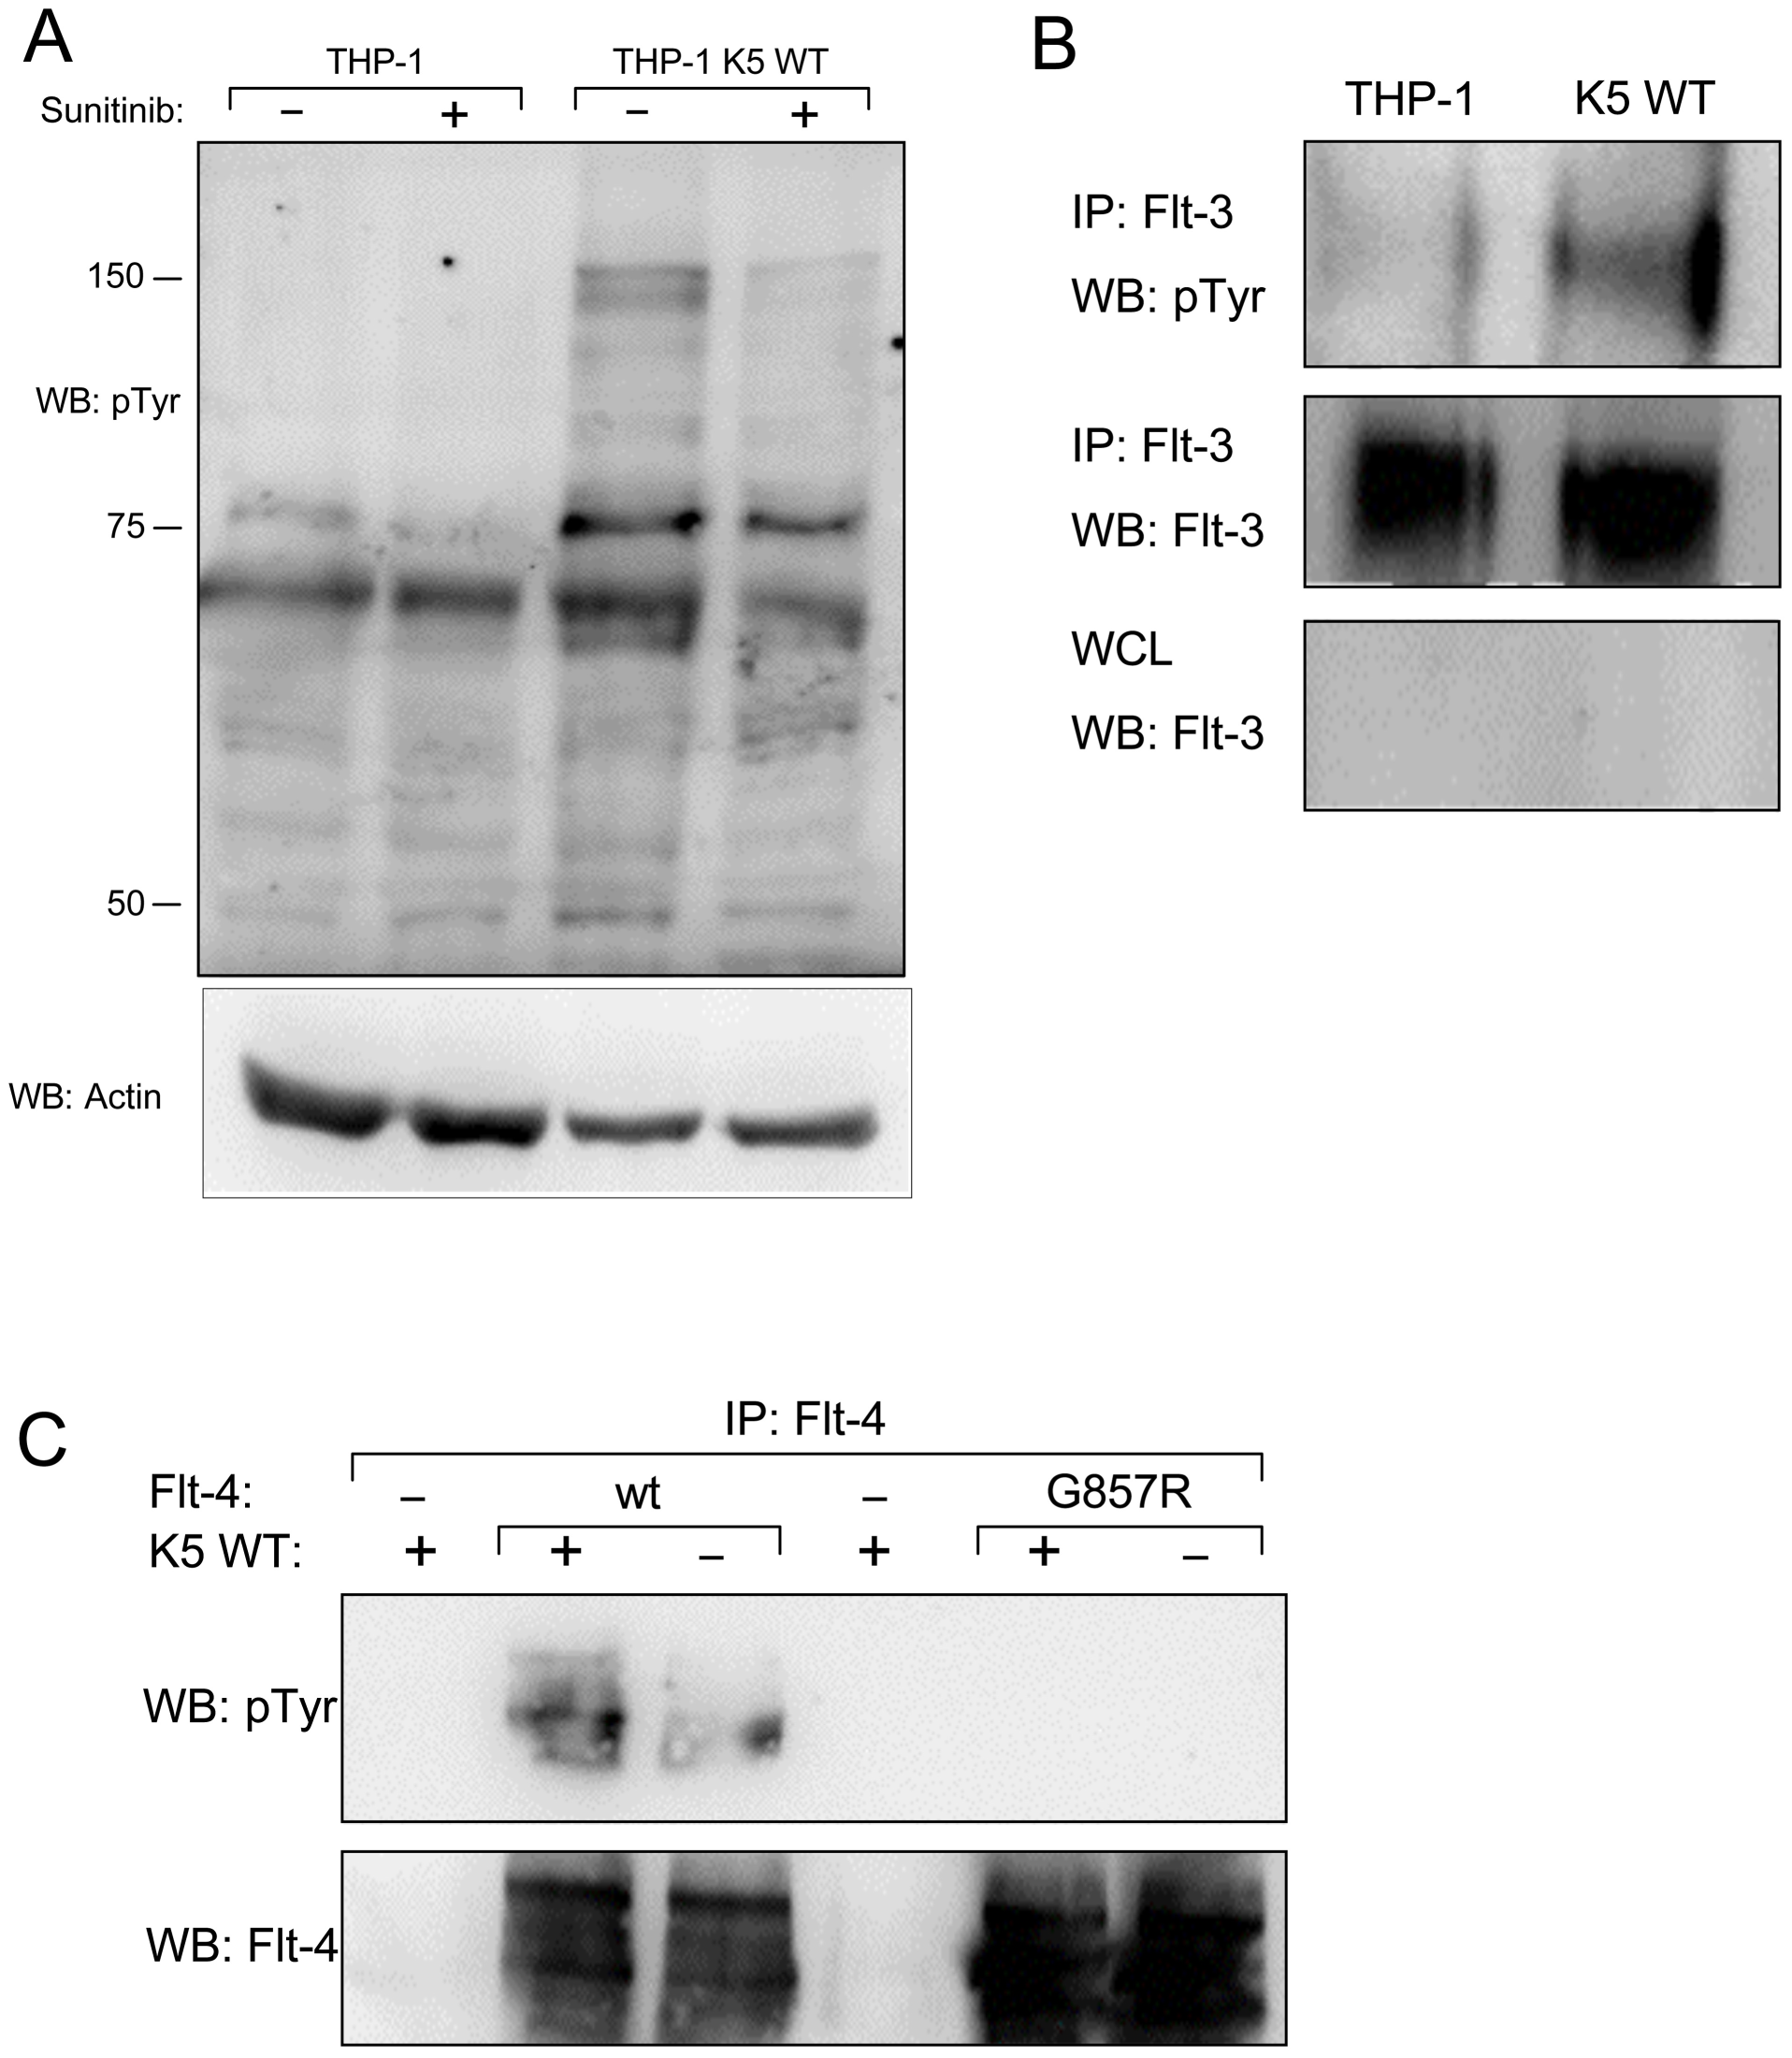 THP-1 cells stably expressing K5 WT have sunitinib-sensitive increased RTK phosphorylation.